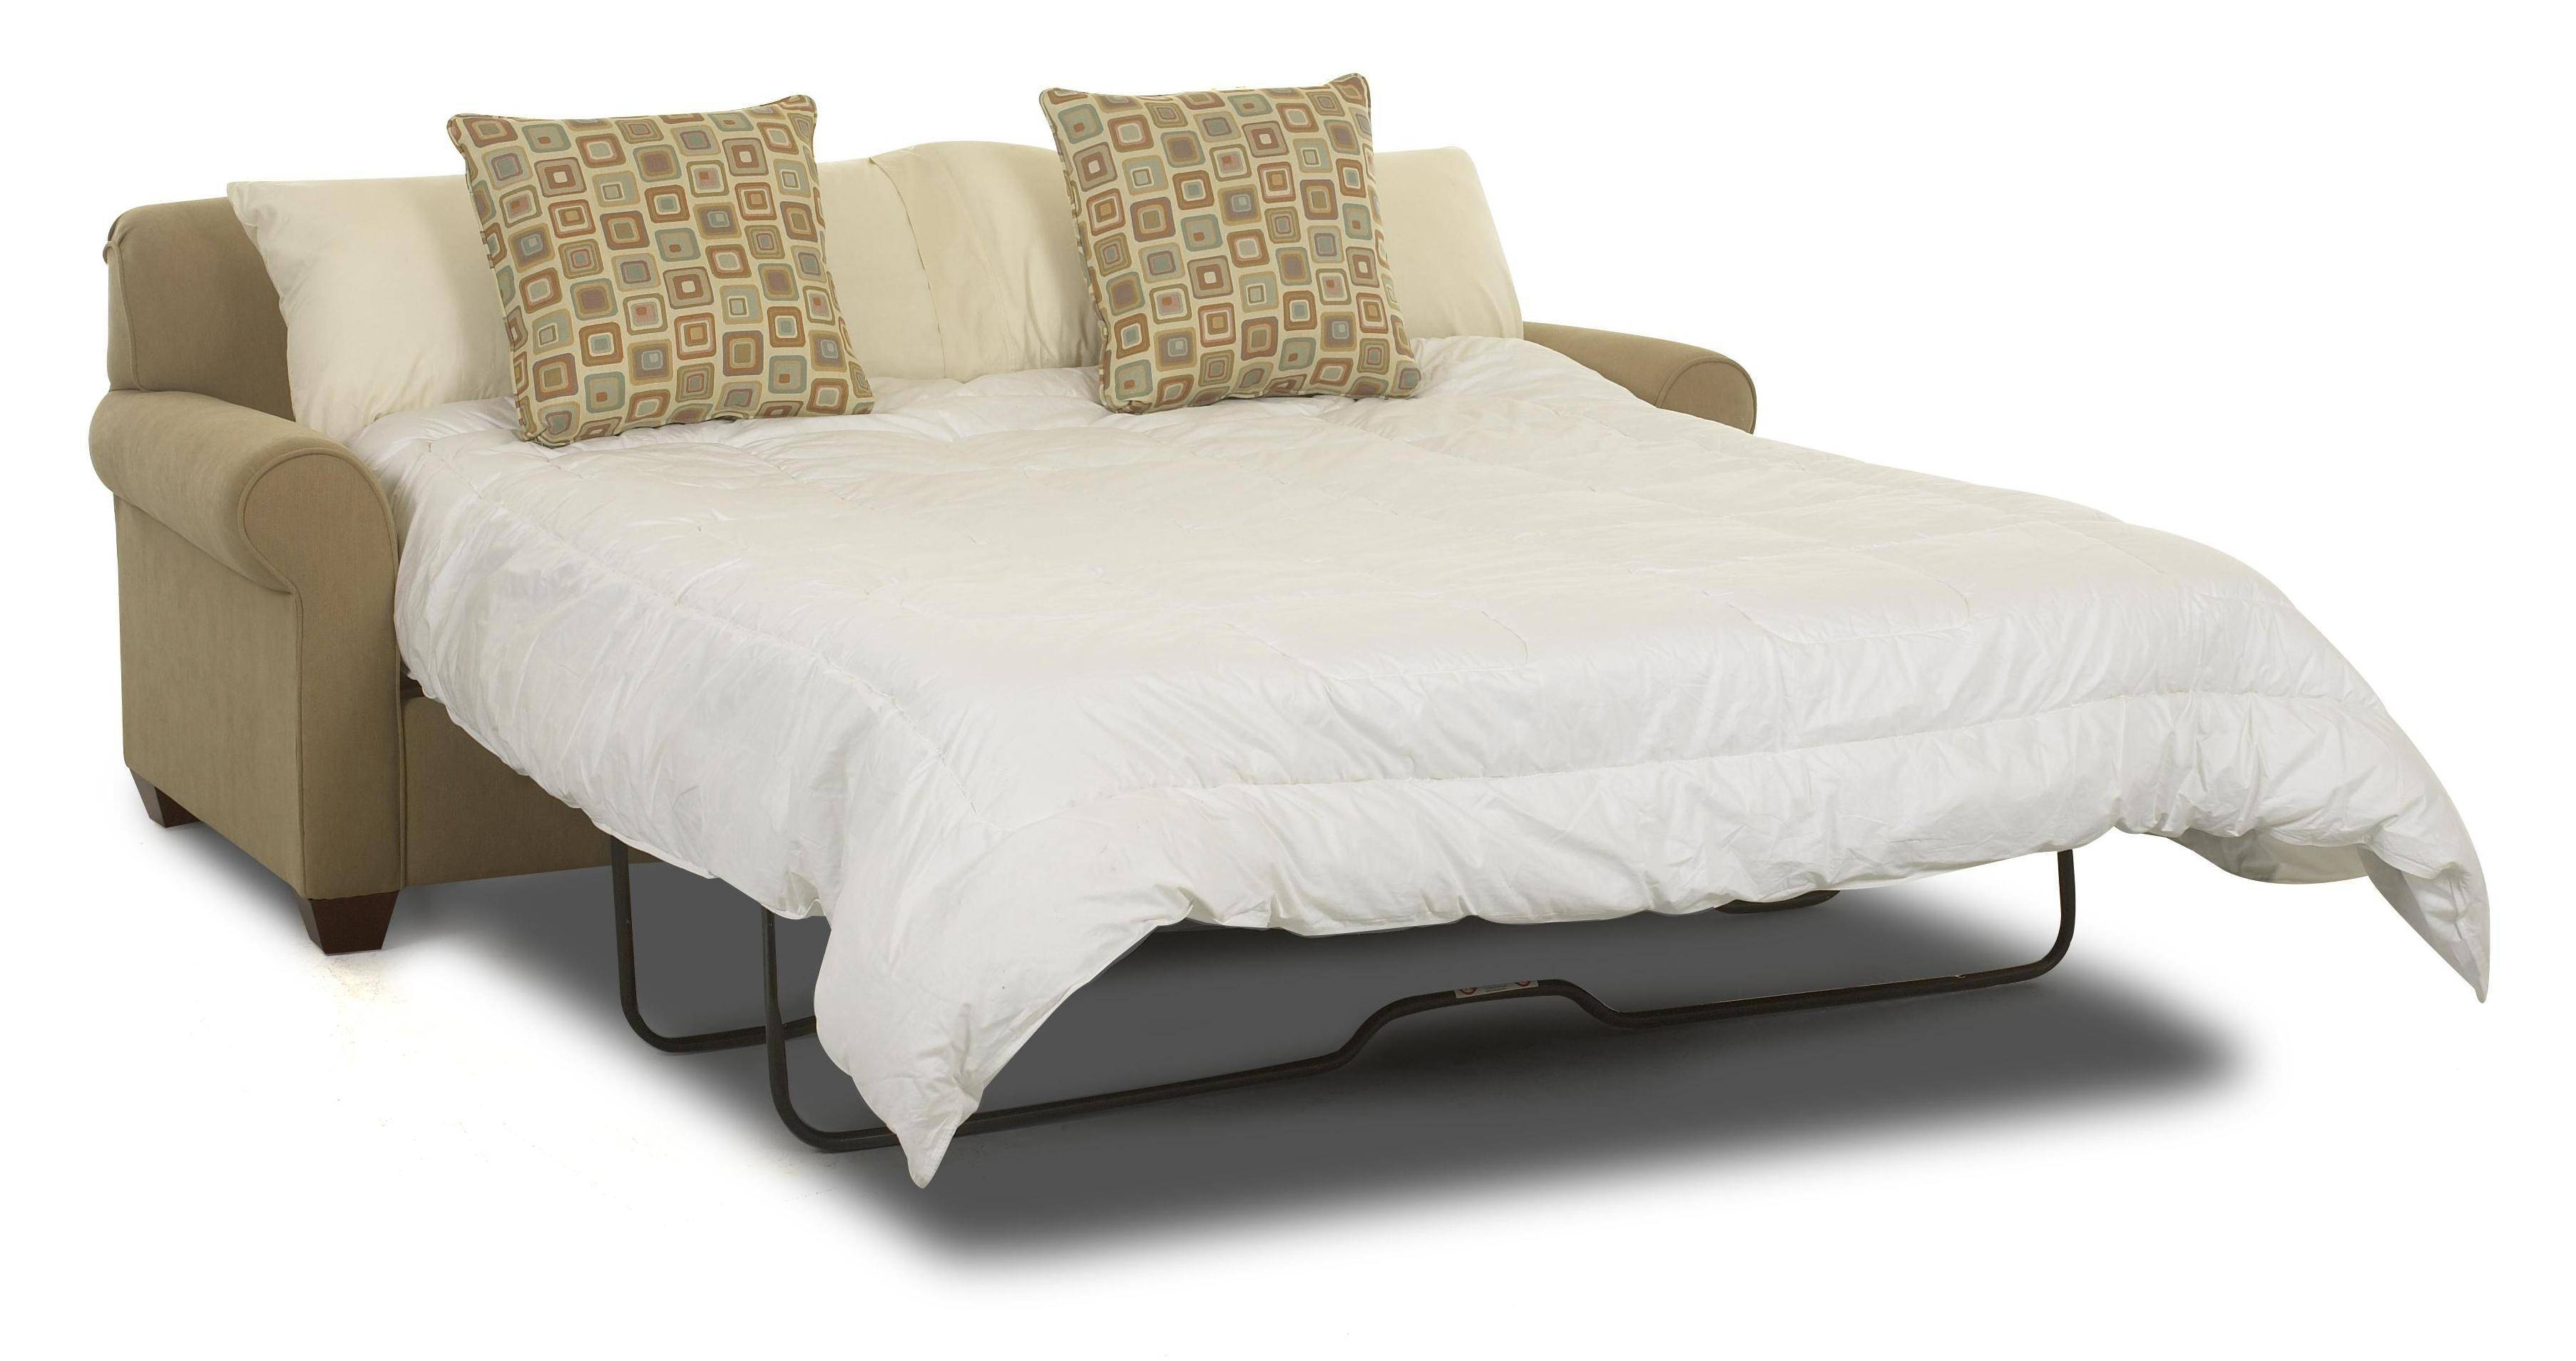 Sofa Sleeper Bed Sheets | Centerfieldbar With Sheets For Sofa Beds Mattress (View 14 of 15)